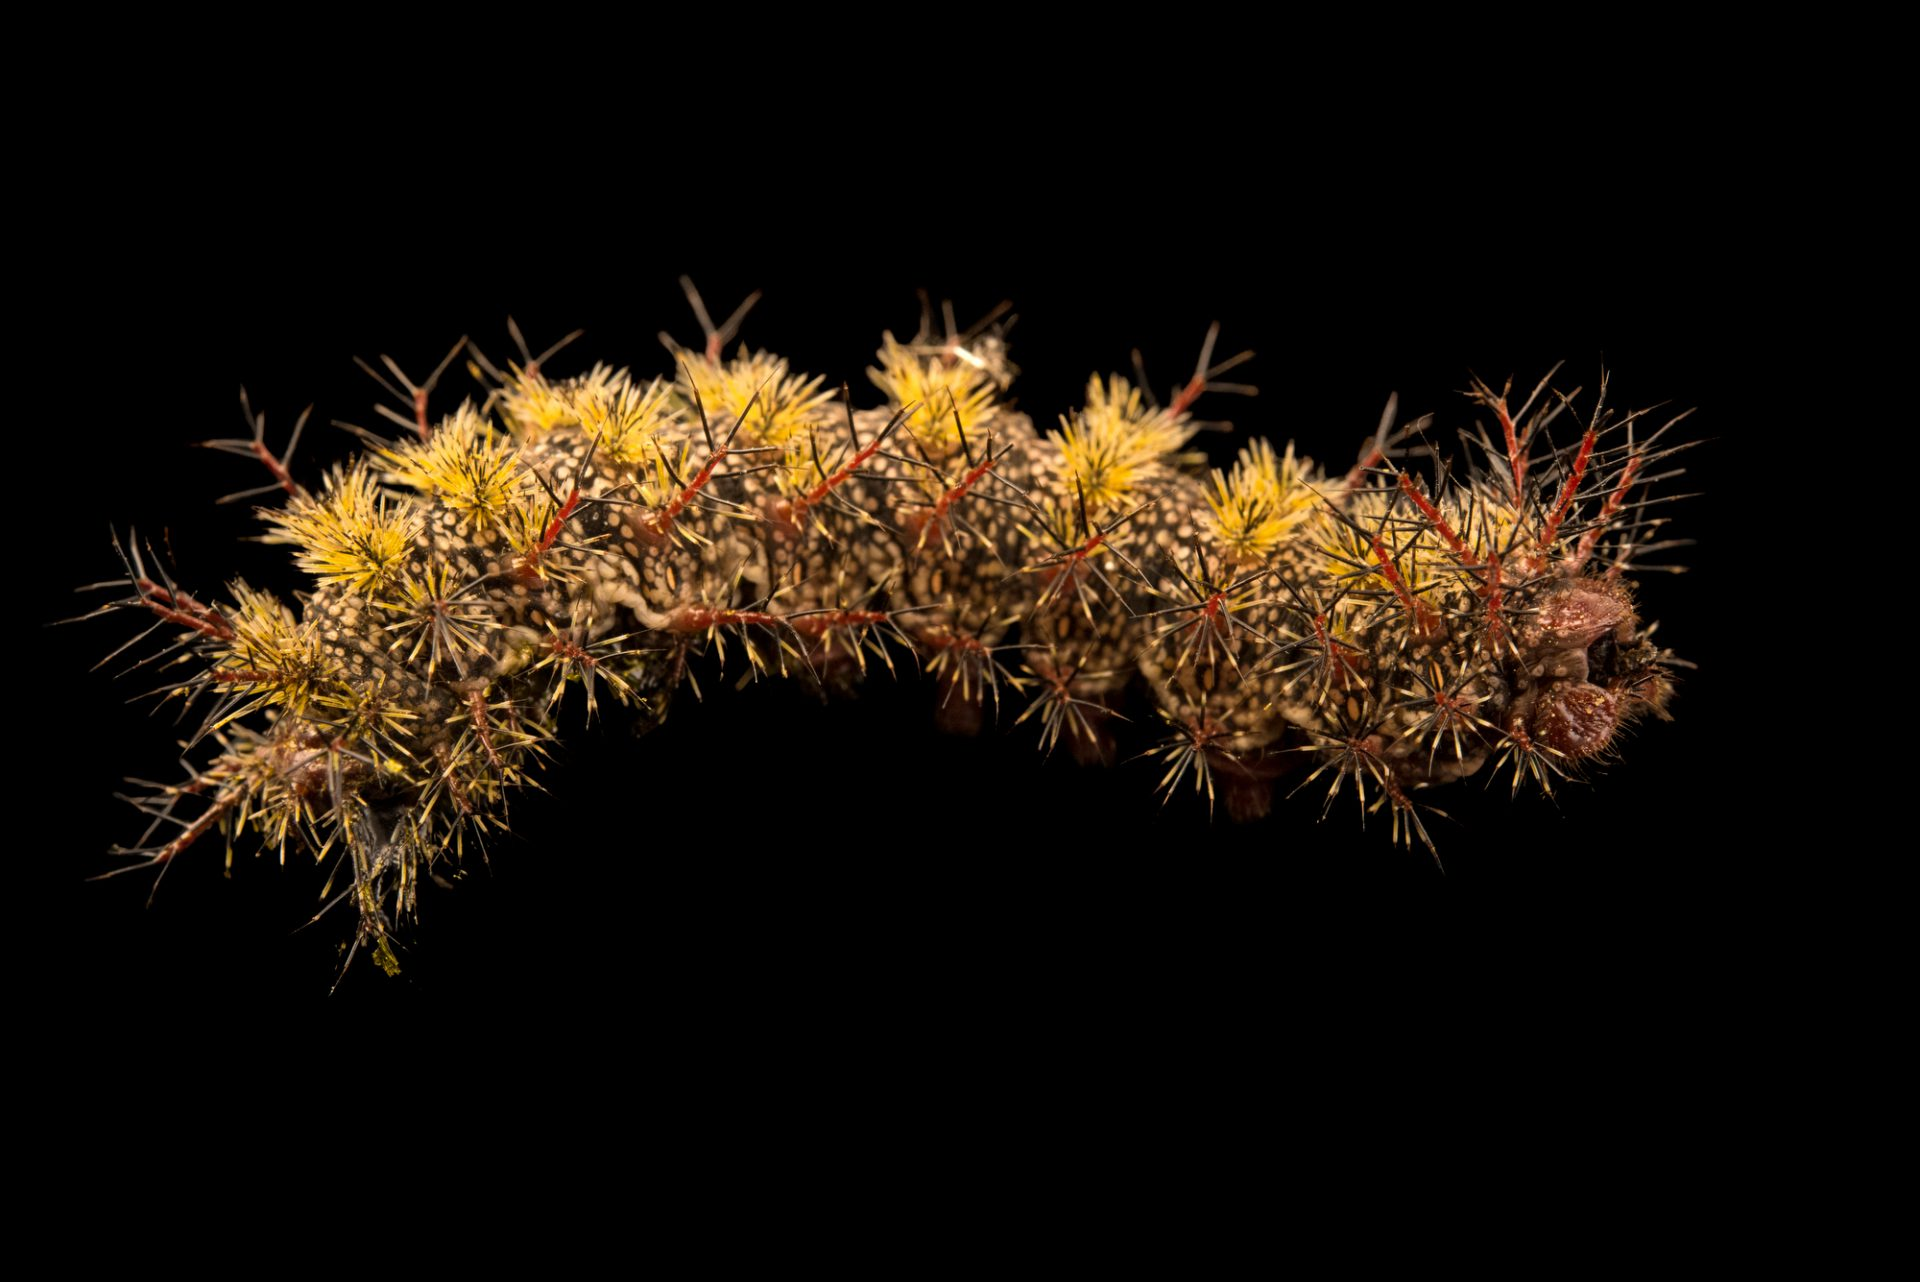 Photo: Buck moth caterpillar (Hemileuca maia) at the Audubon Insectarium.